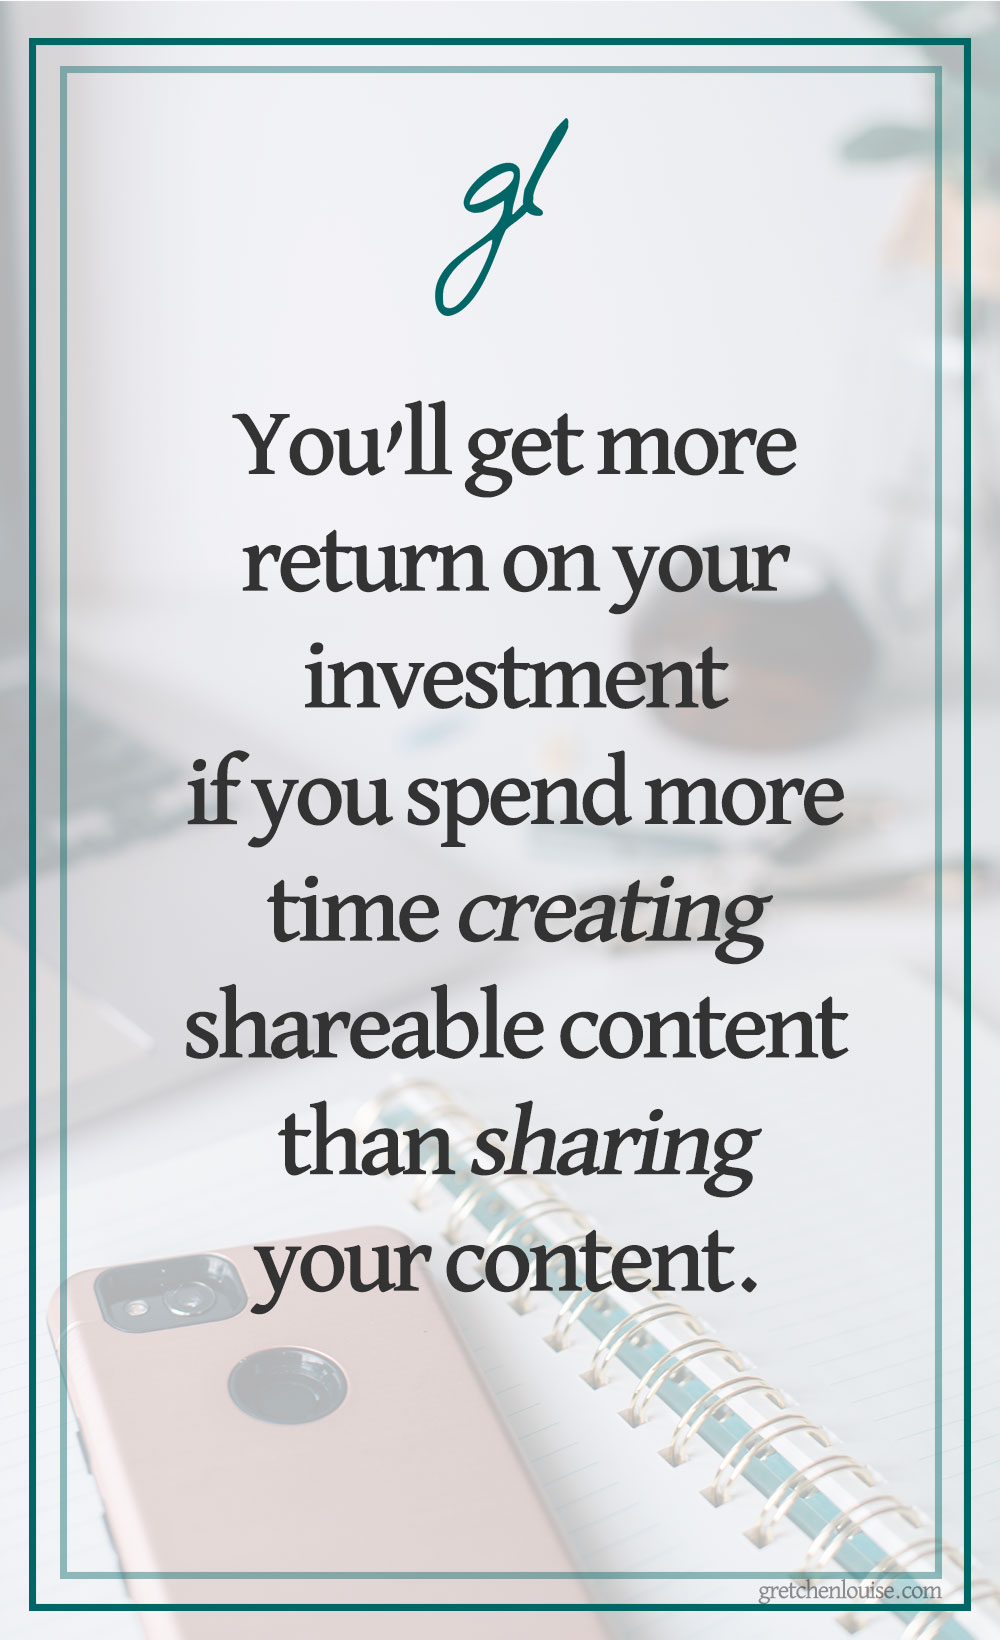 If you're a smart blogger, you know you'll get more return on your investment if you spend more time creating shareable content than sharing your content.